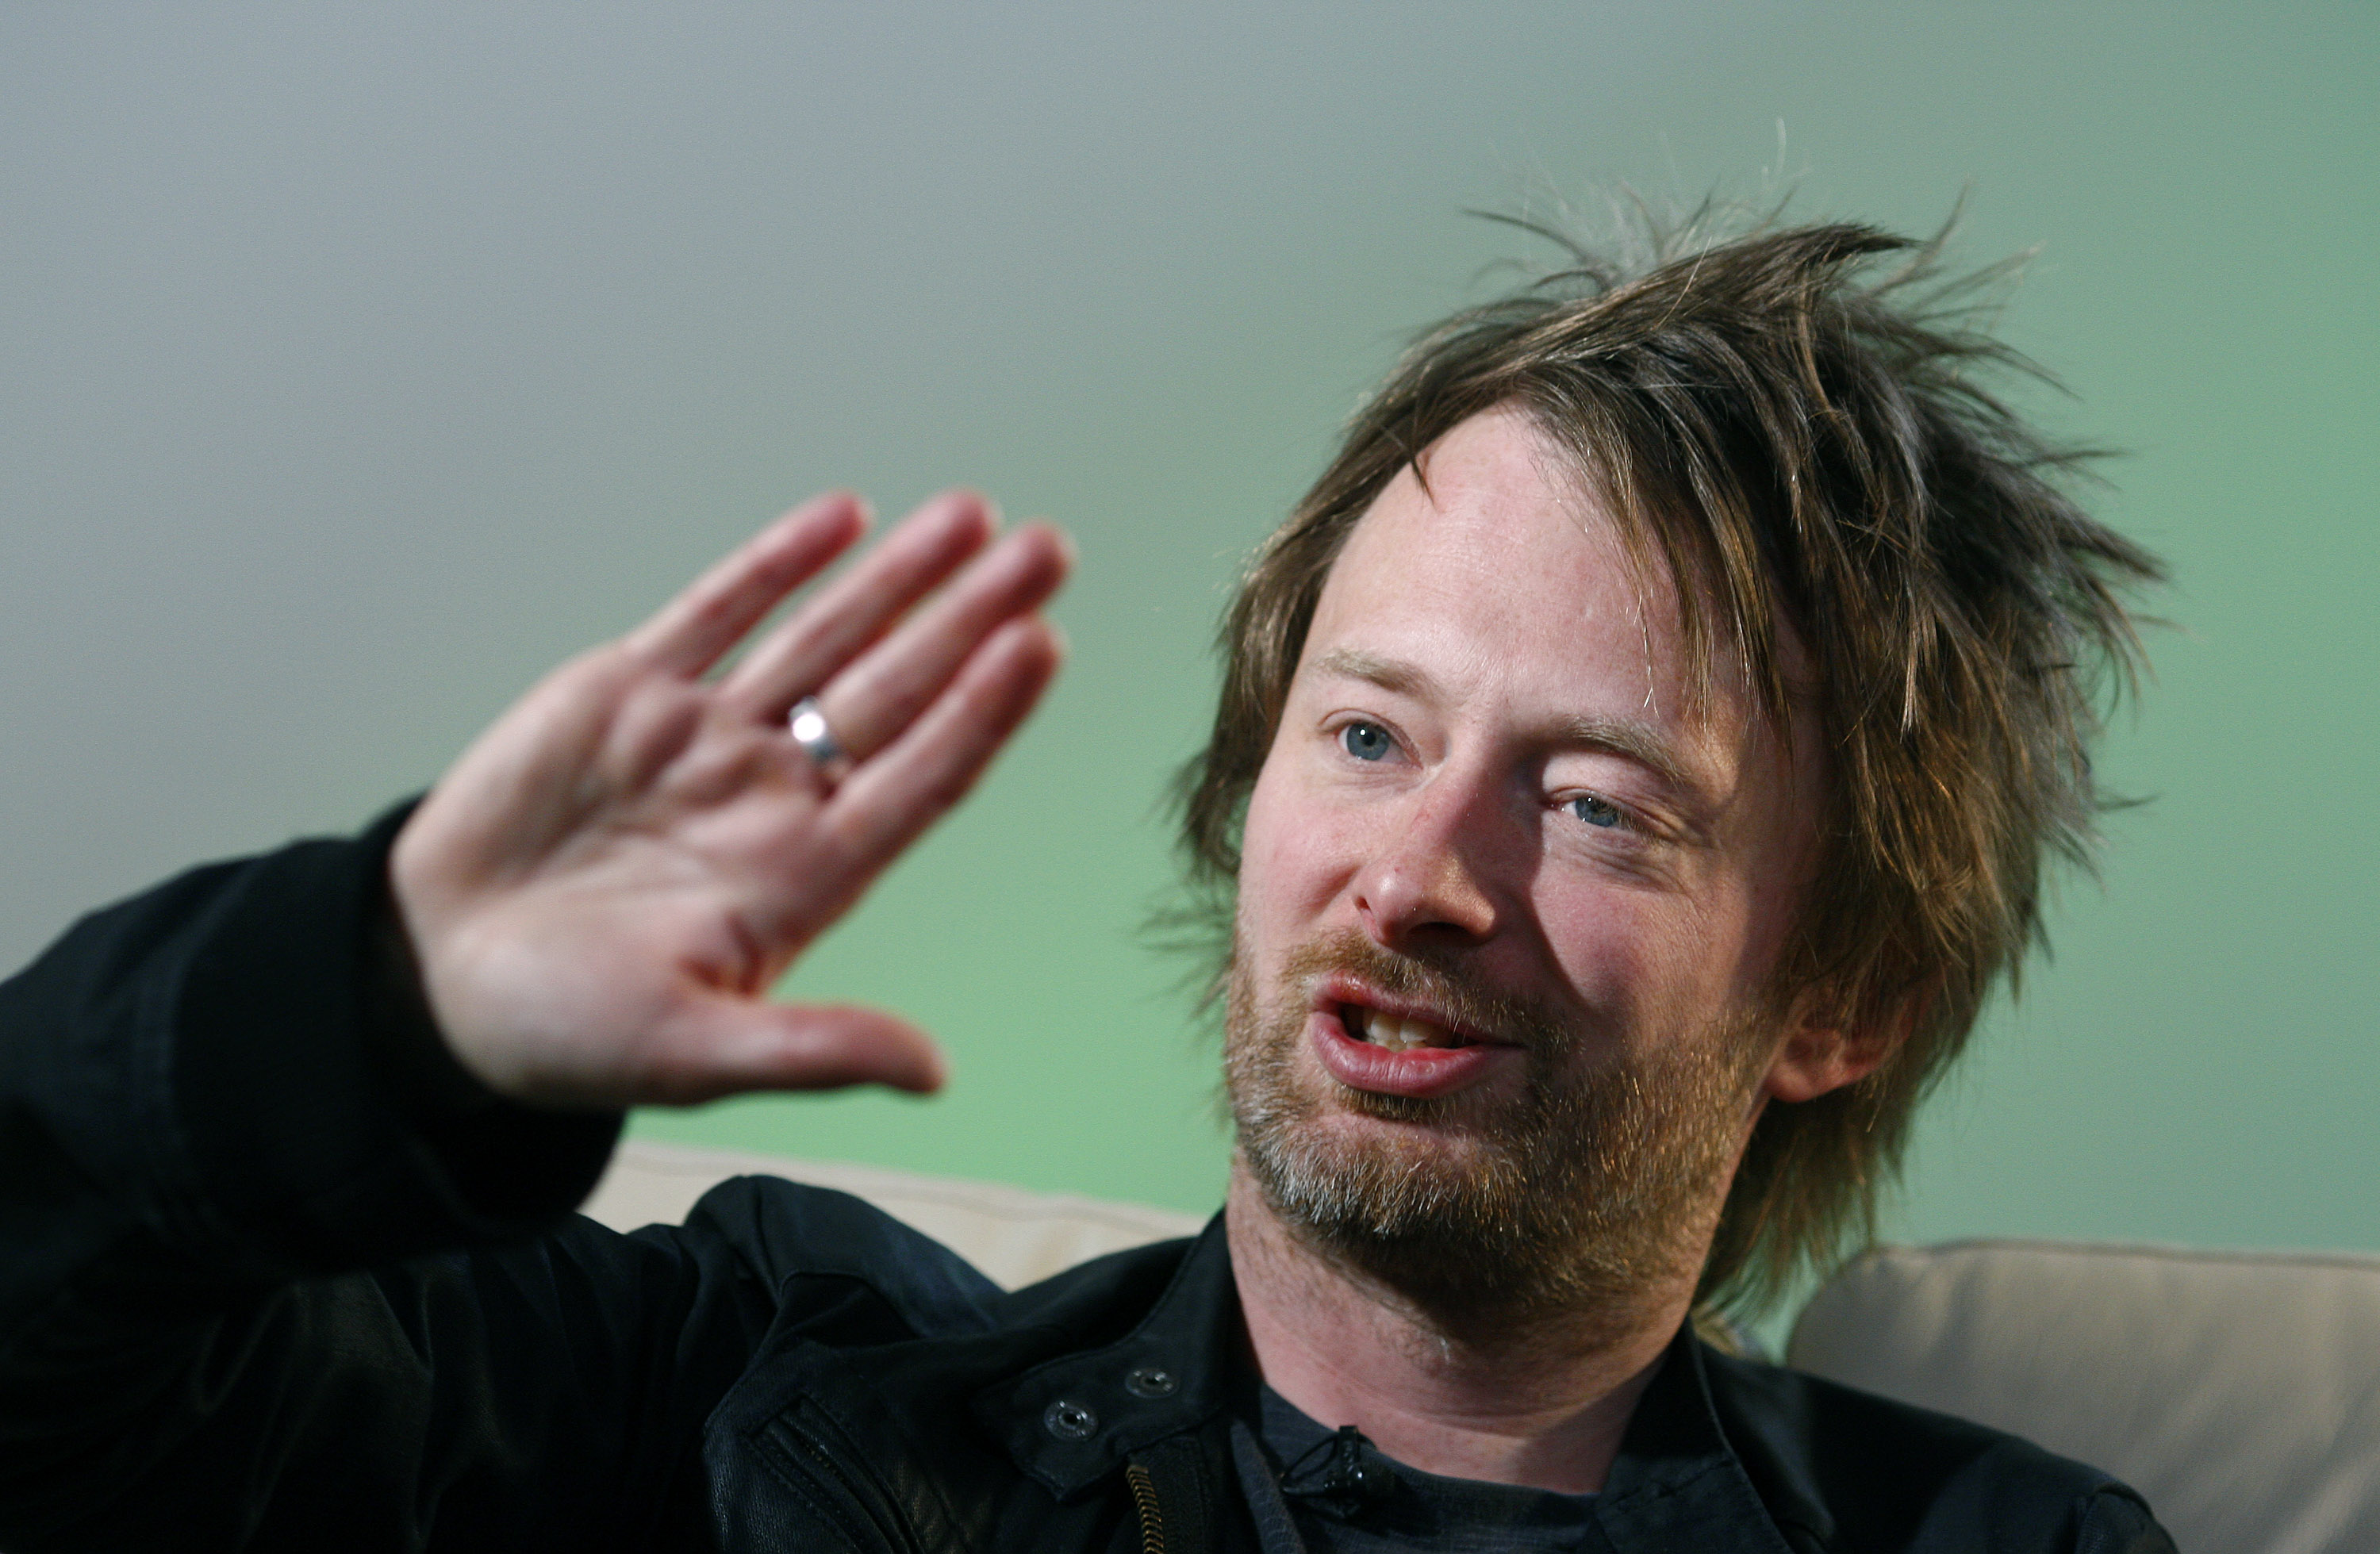 Radiohead's Thom Yorke gestures during an interview with Reuters in Maidenhead, central England